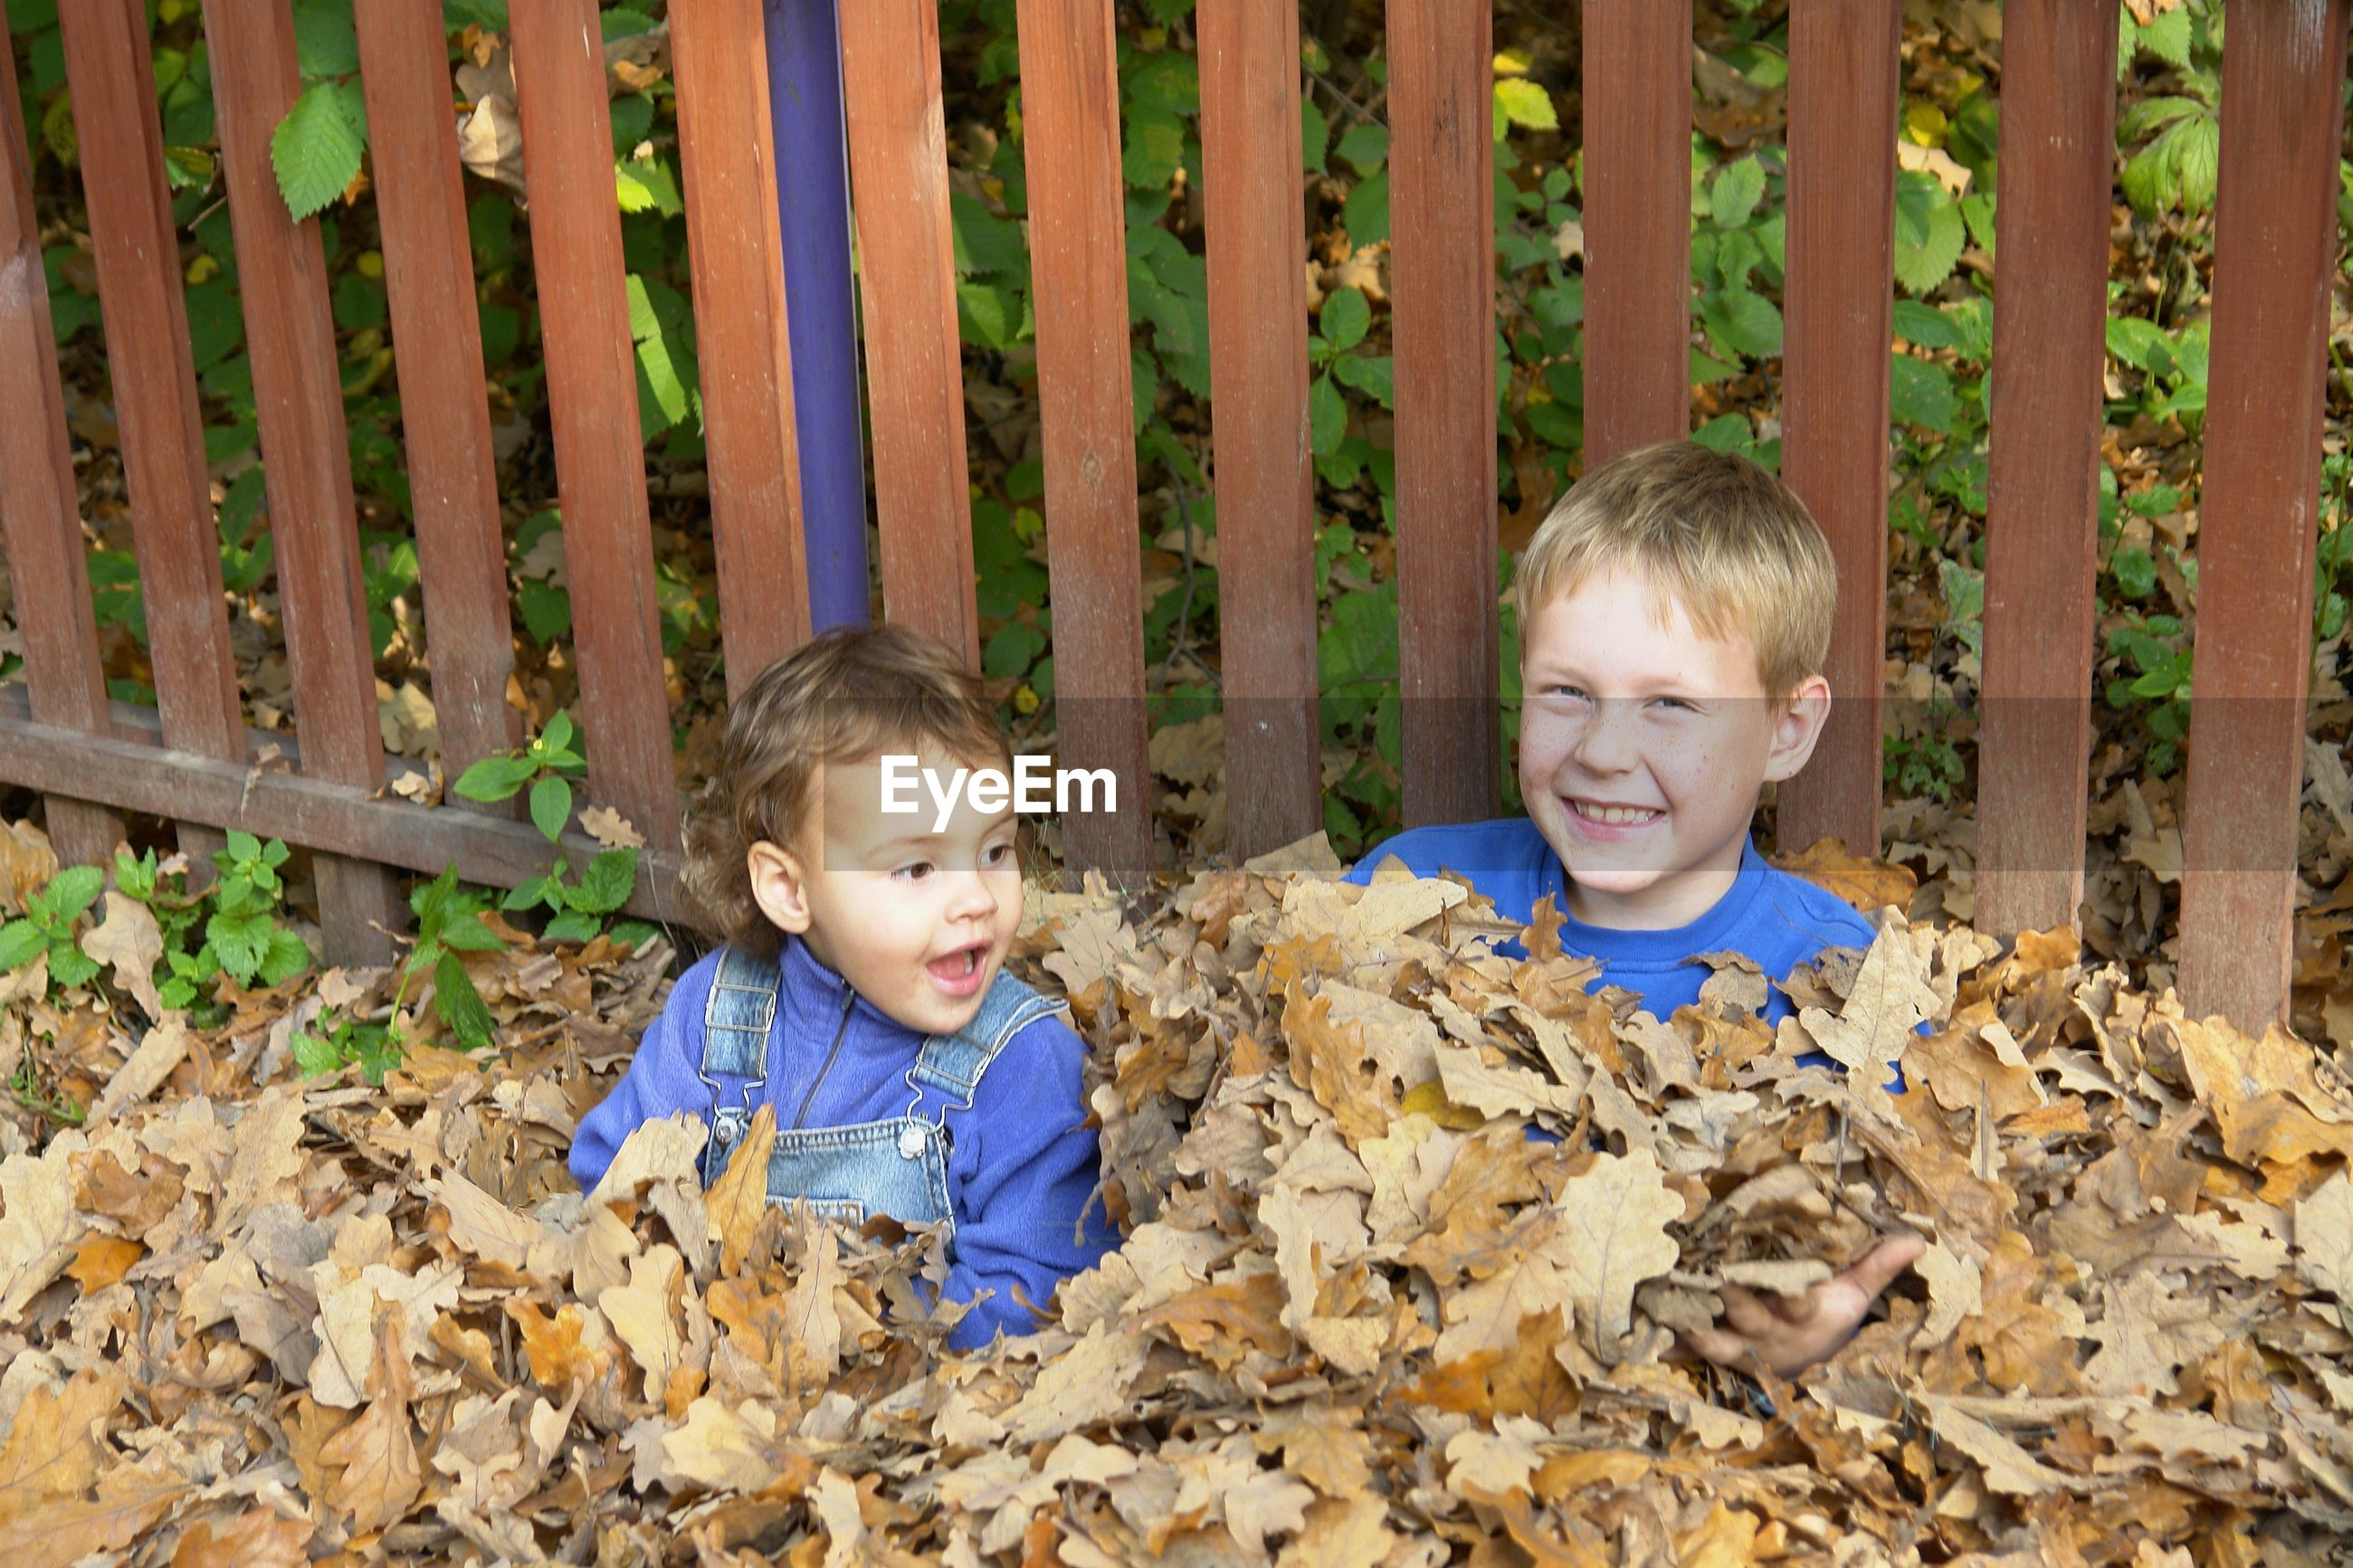 Portrait of happy boy with brother sitting amidst autumn leaves